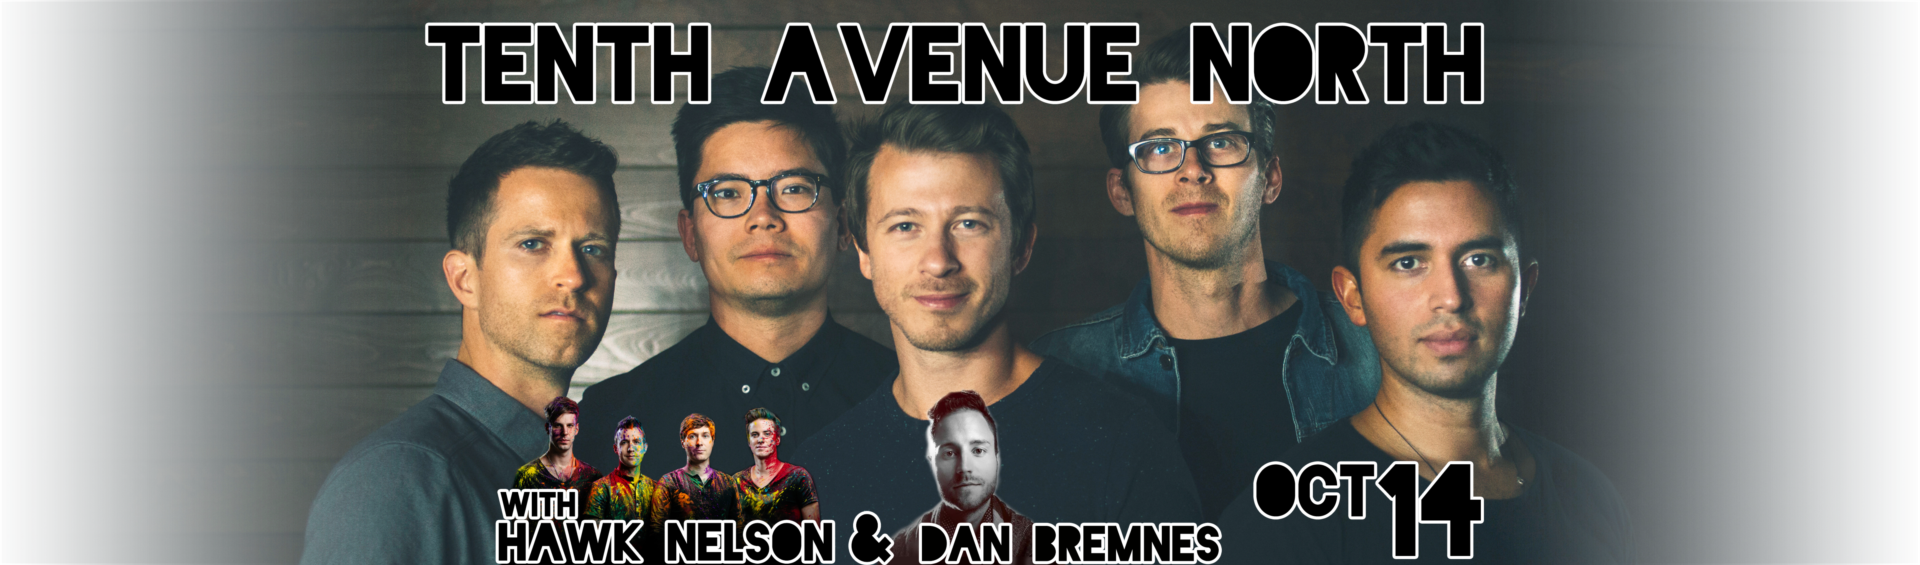 tenth avenue North-909.png